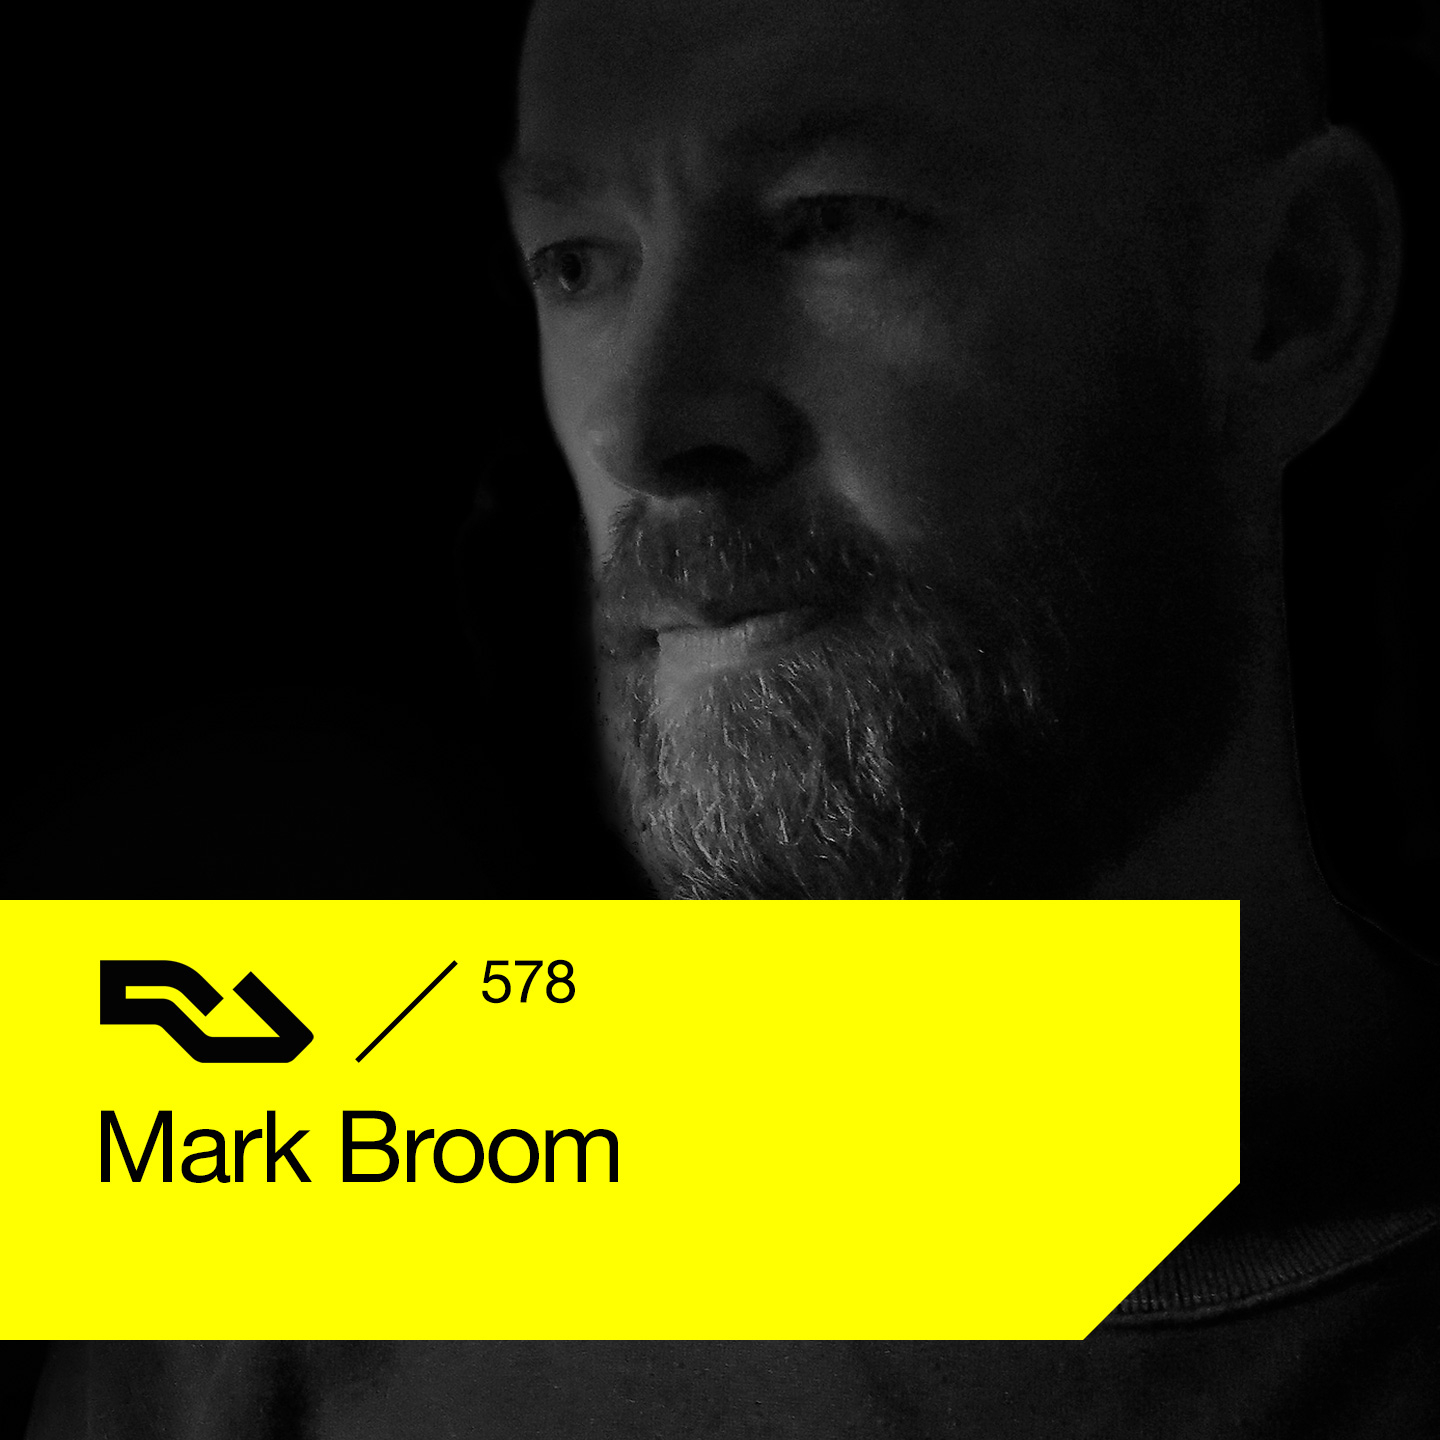 RA.578 Mark Broom